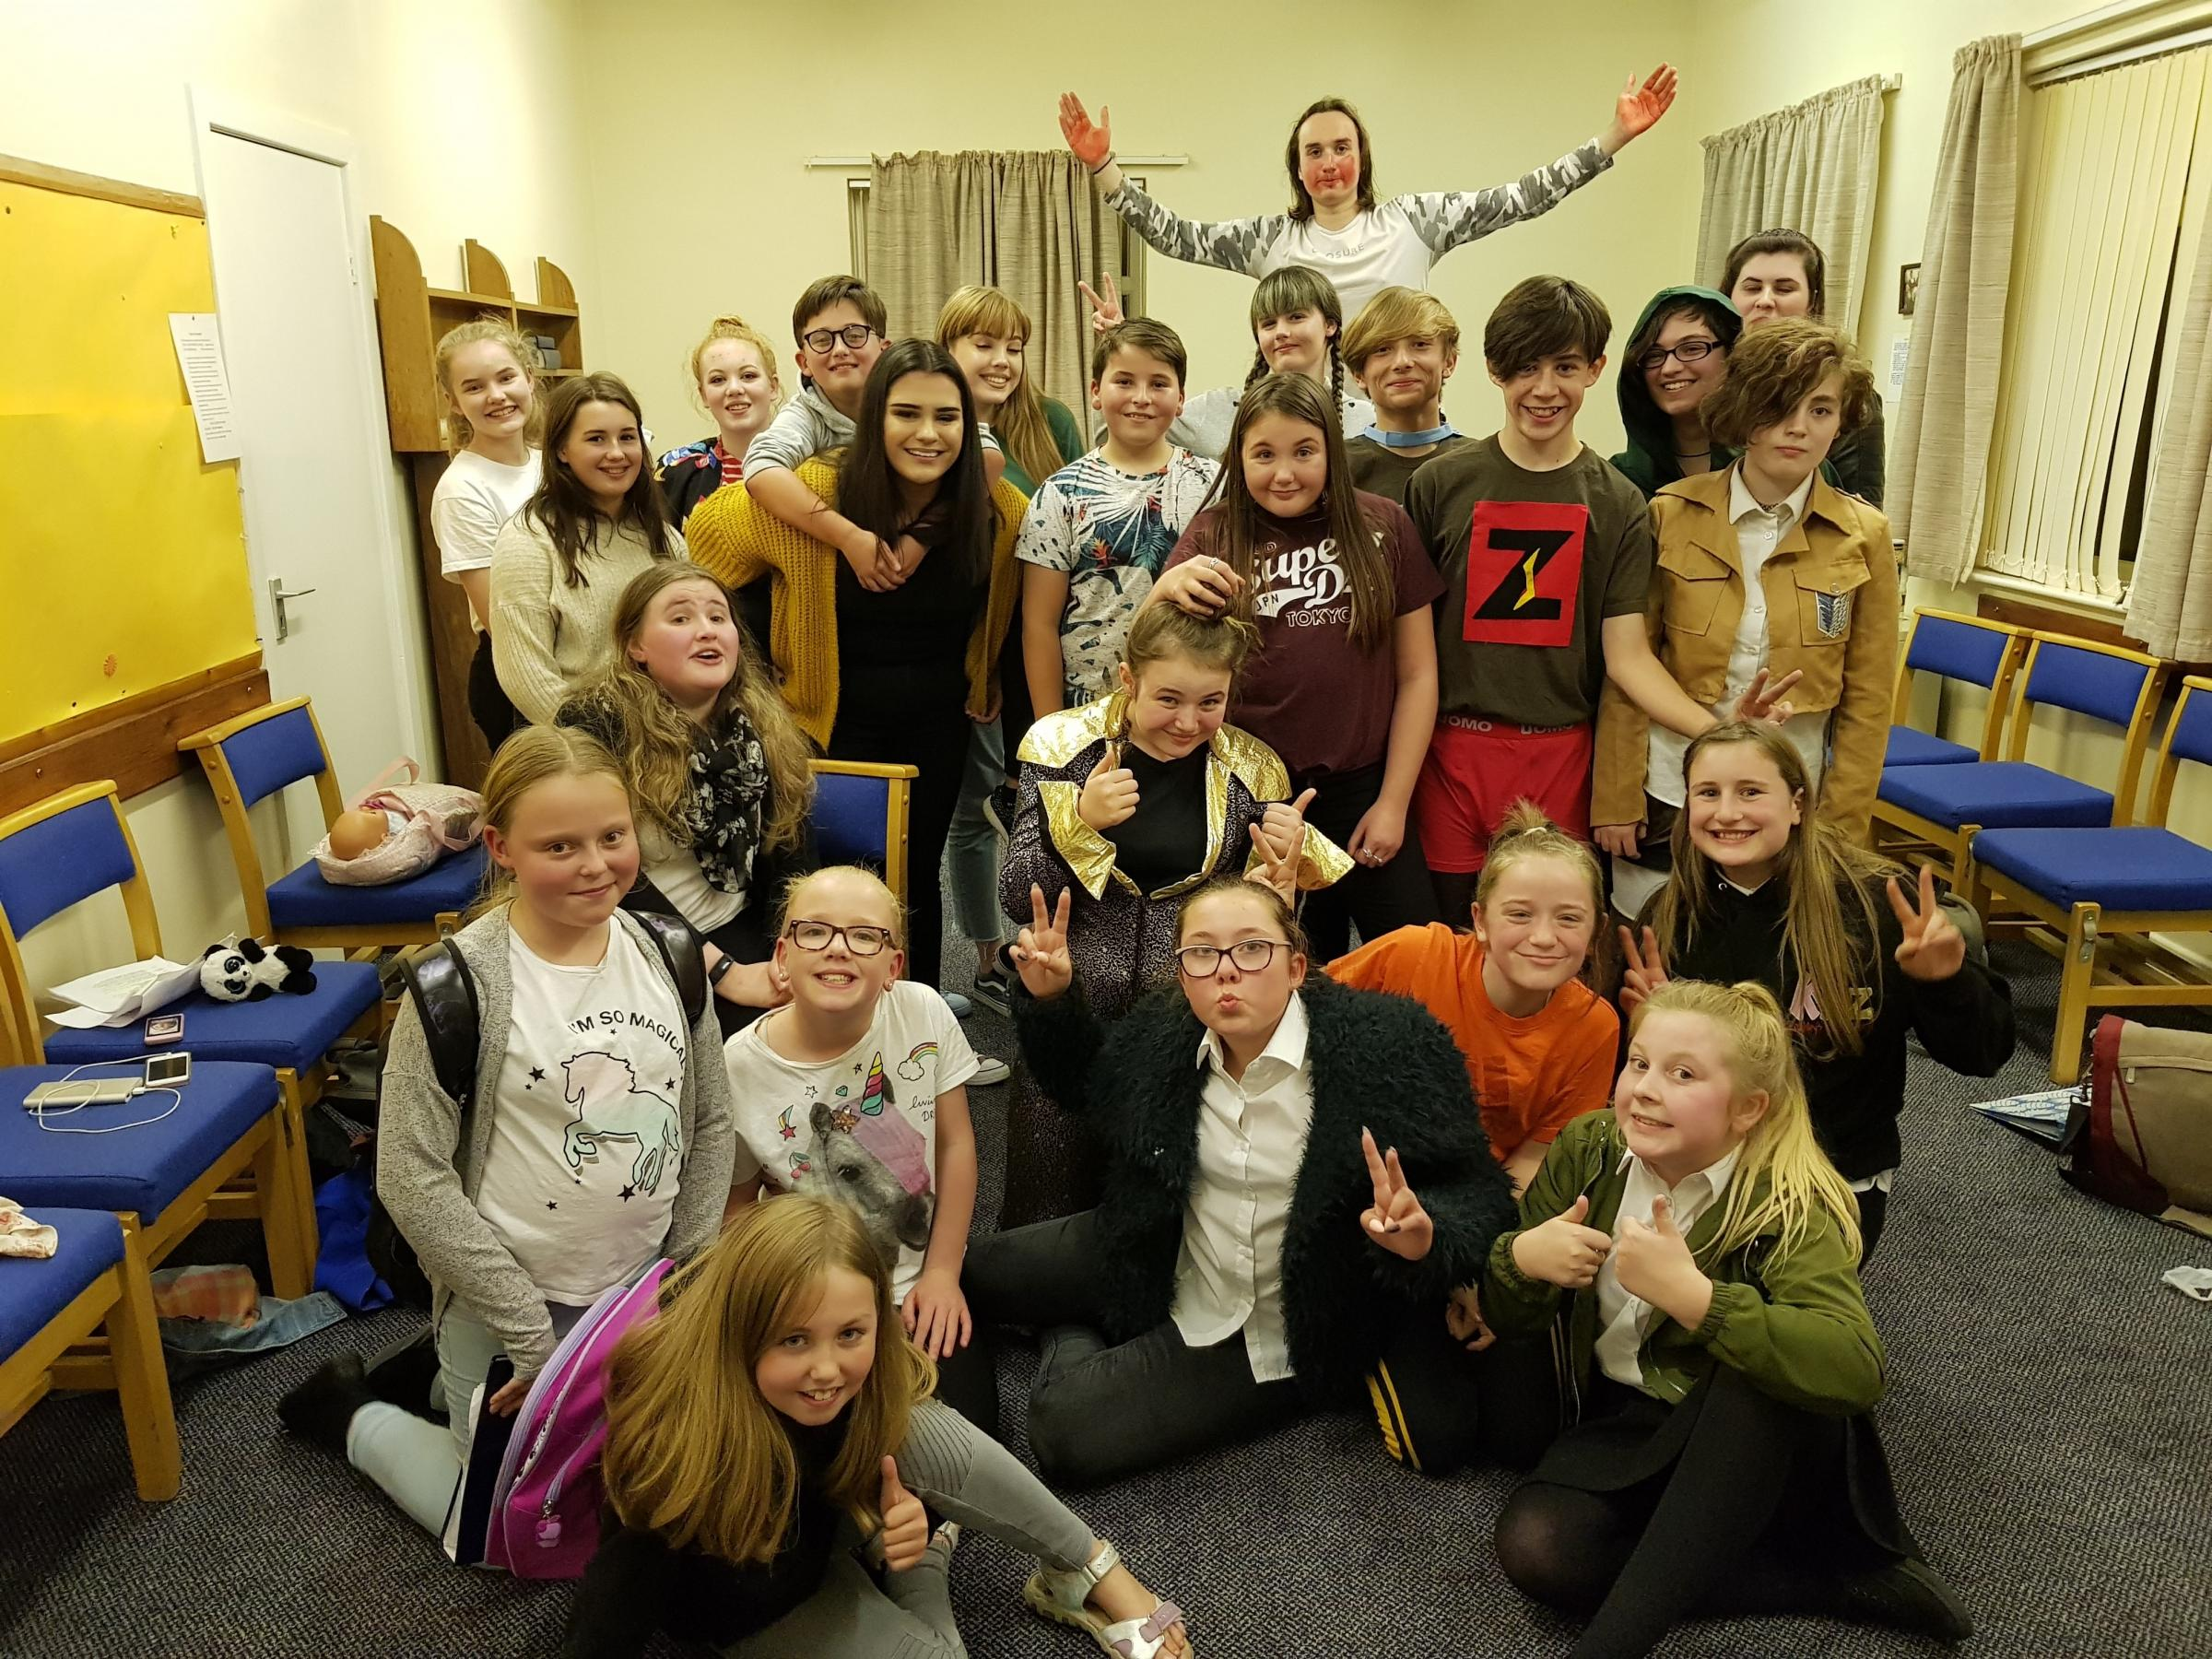 KYDZ Keighley Youth Theatre are presenting a concert in Oakworth